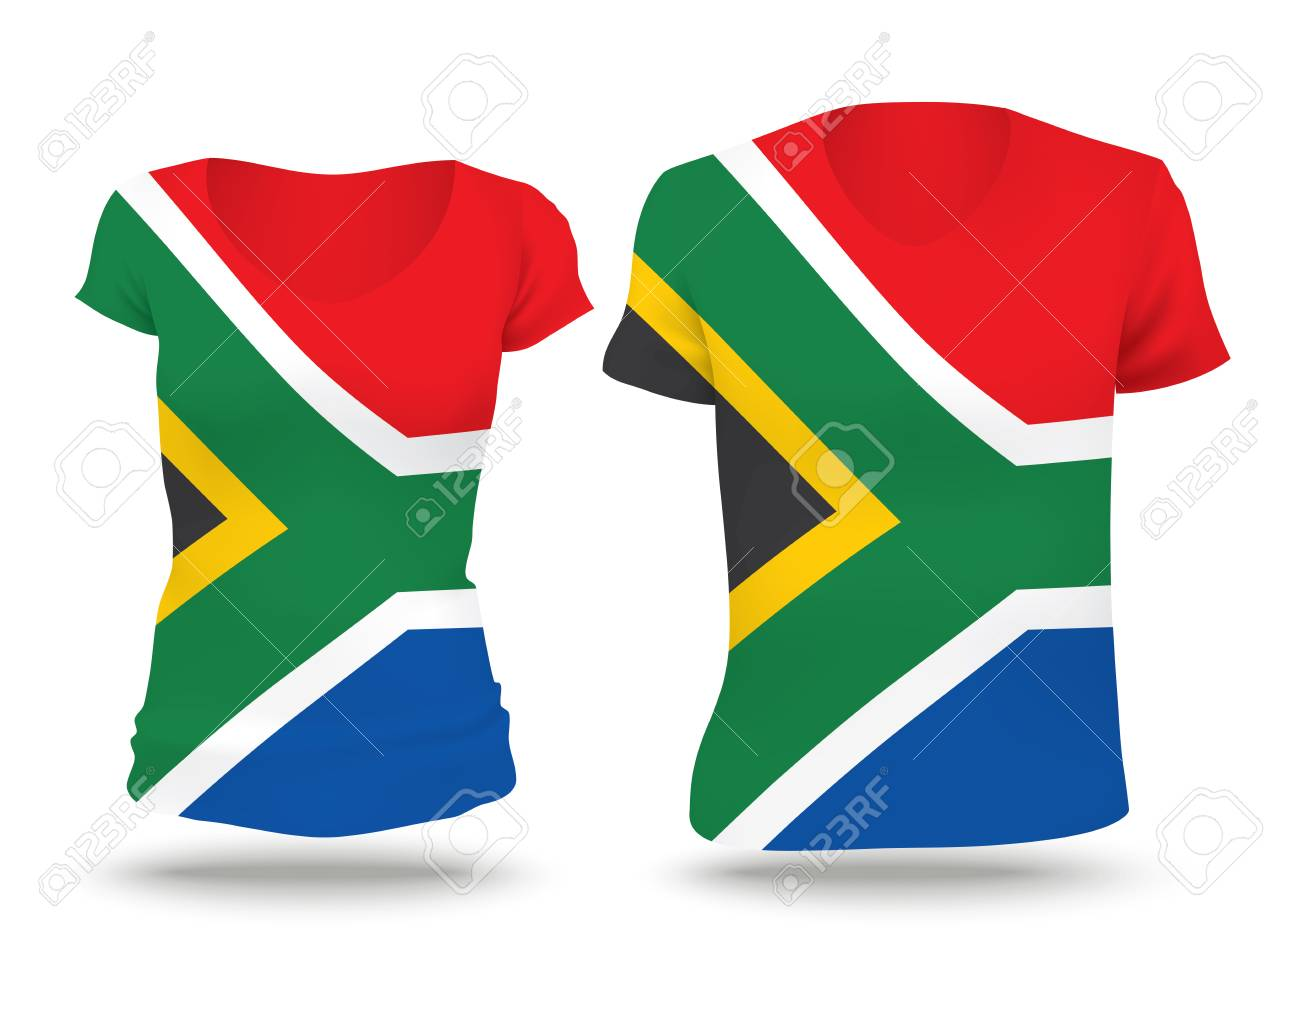 2c975fe95 Flag shirt design of South Africa - vector illustration Stock Vector -  42296873